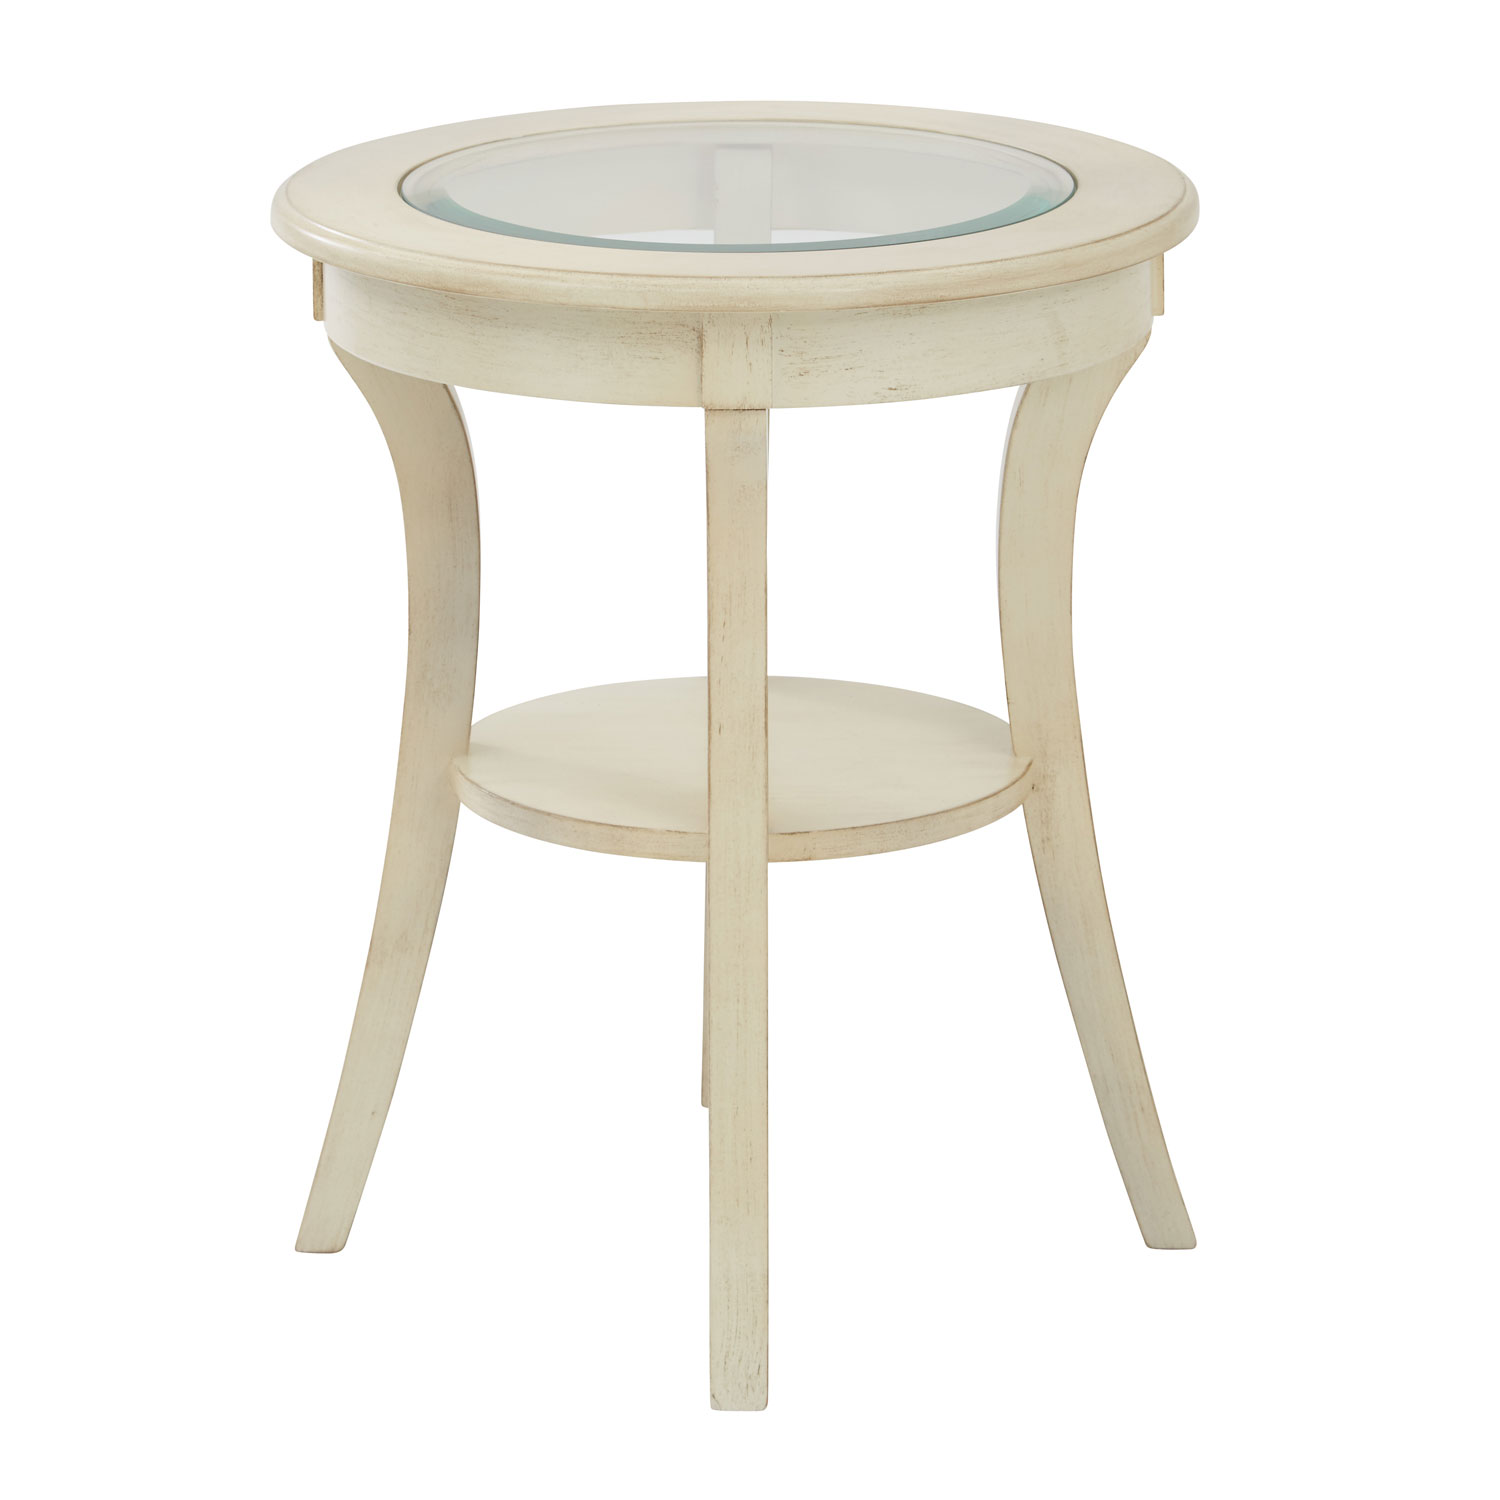 office star products harper antique white round accent table hover zoom small short side marble top bedside dining room simple end plans ikea garden shelf living set traditional